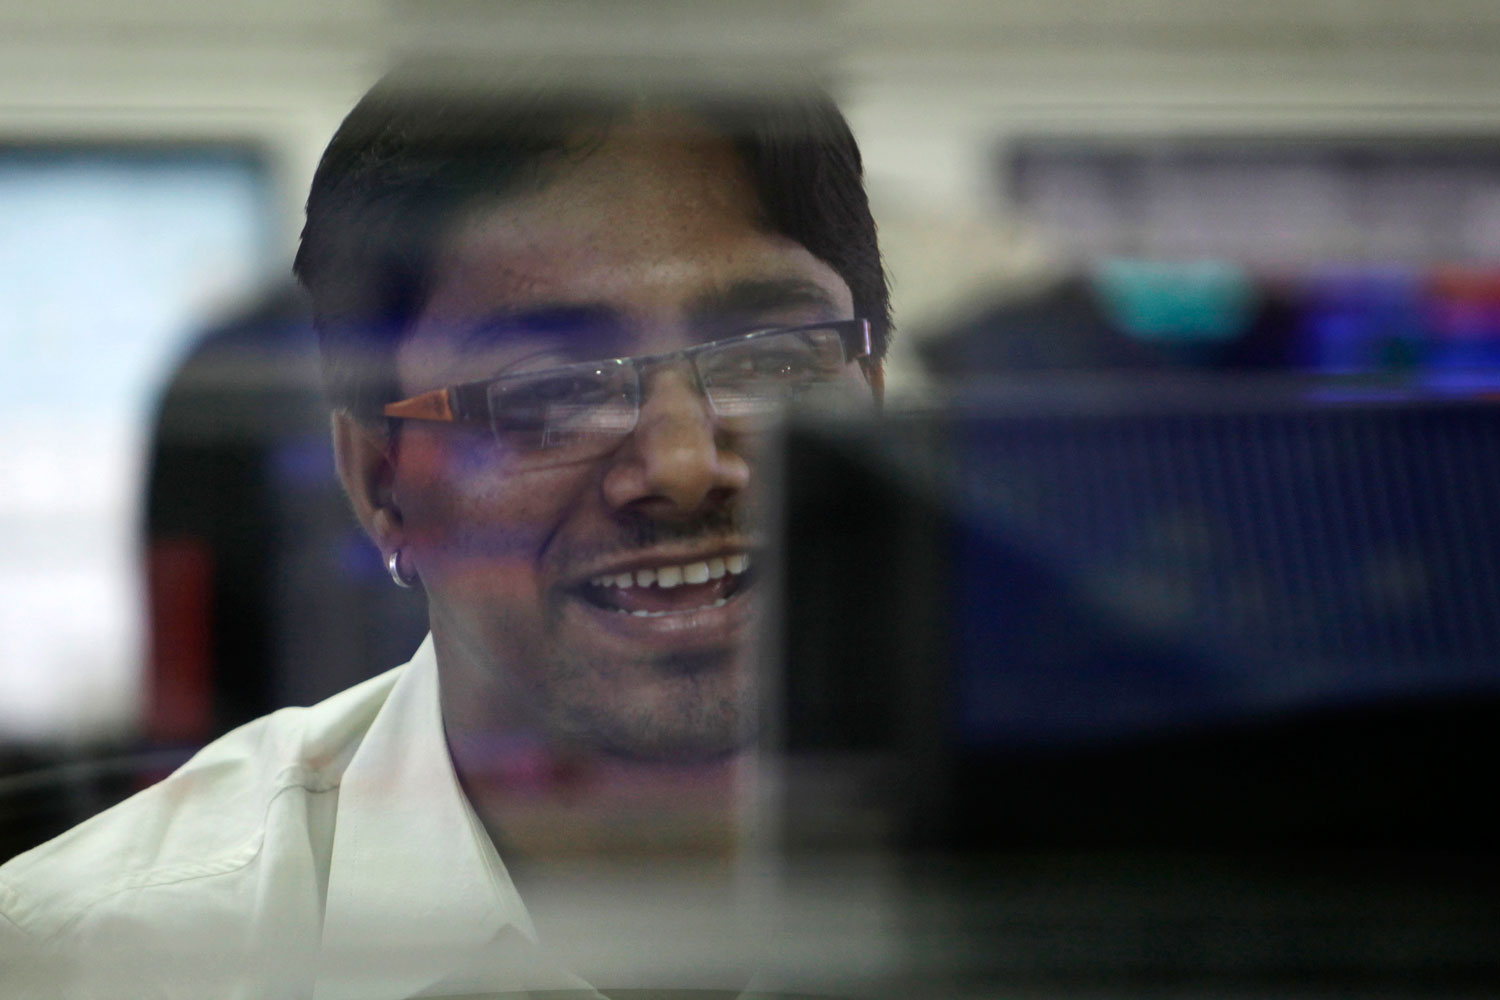 An Indian stock broker reacts as he watches the Bombay Stock Exchange (BSE) index on his trading terminals in Mumbai, India, August 10, 2011. Asian stock markets jumped Wednesday following a surge on Wall Street triggered by a Federal Reserve pledge to keep interest rates super low for the next two years to help the ailing U.S. economy.